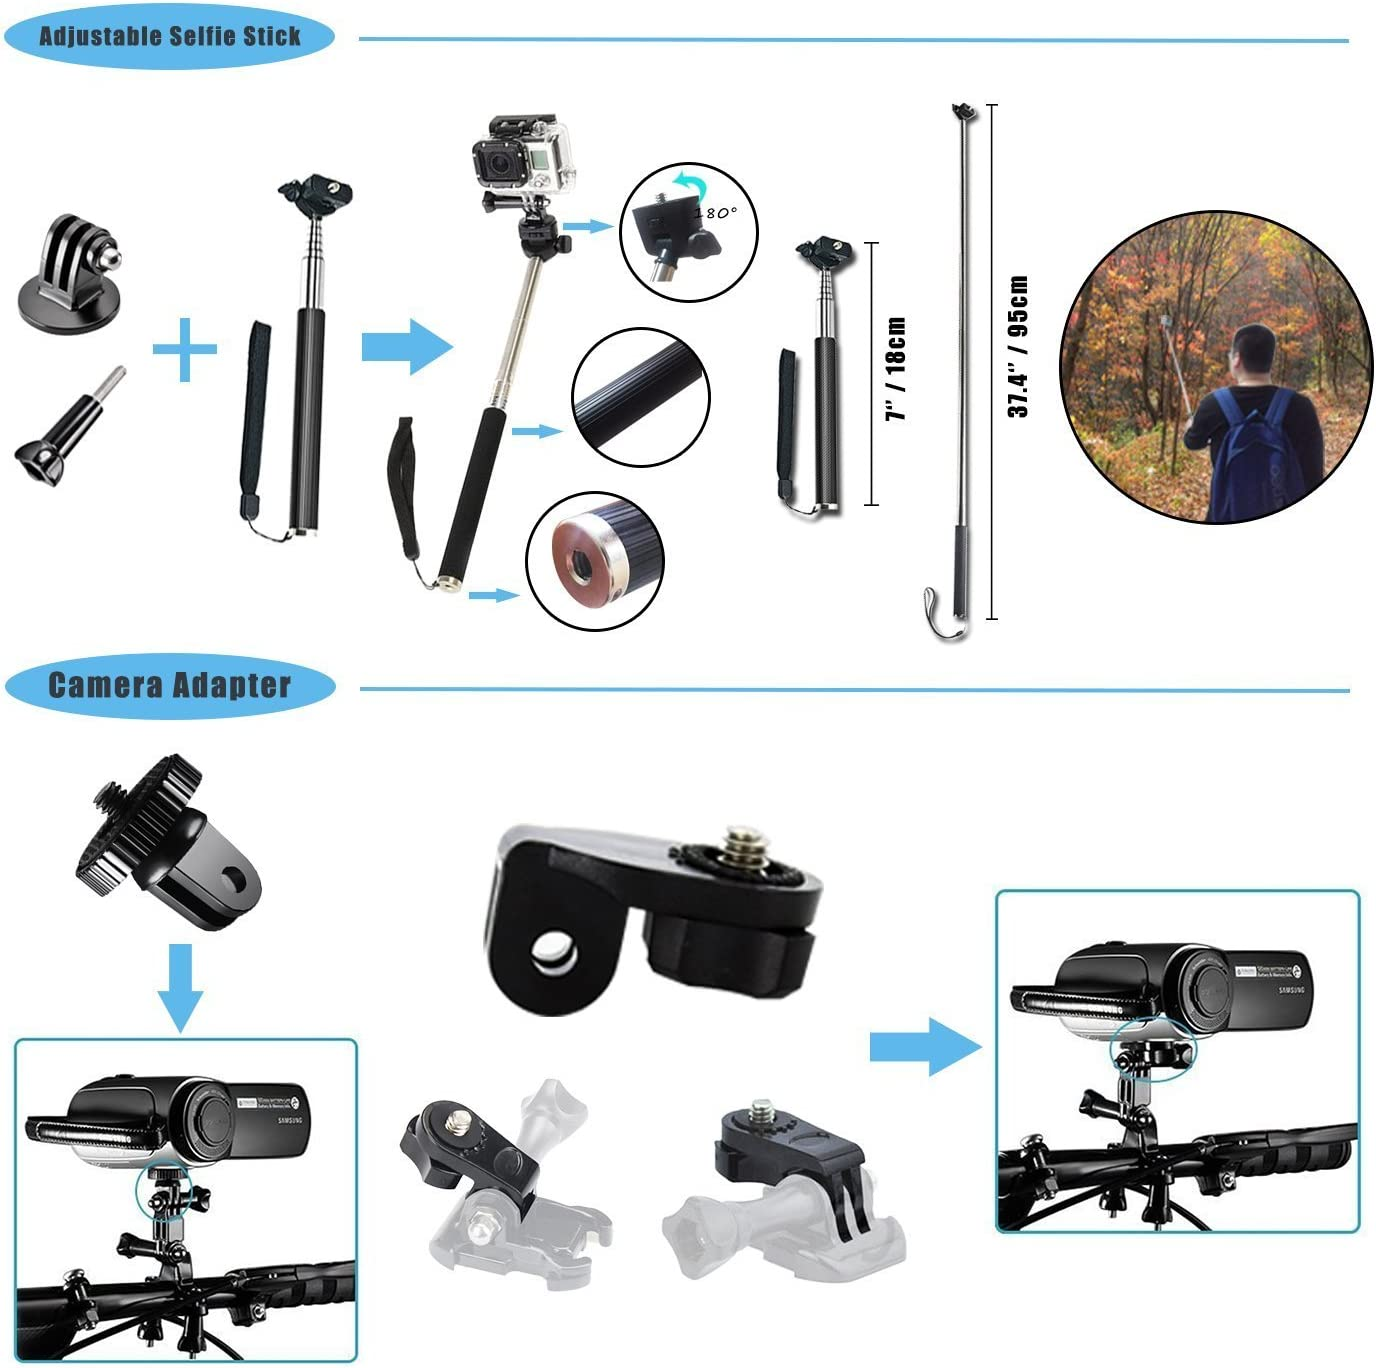 Followsun 15-In-1 Action Camera Accessories Kit for GoPro Hero 2019 Fusion Max Hero Session DJI OSMO Pocket AKASO Campark ACT74 ACT76 APEMAN Crosstour Sjcam Victure